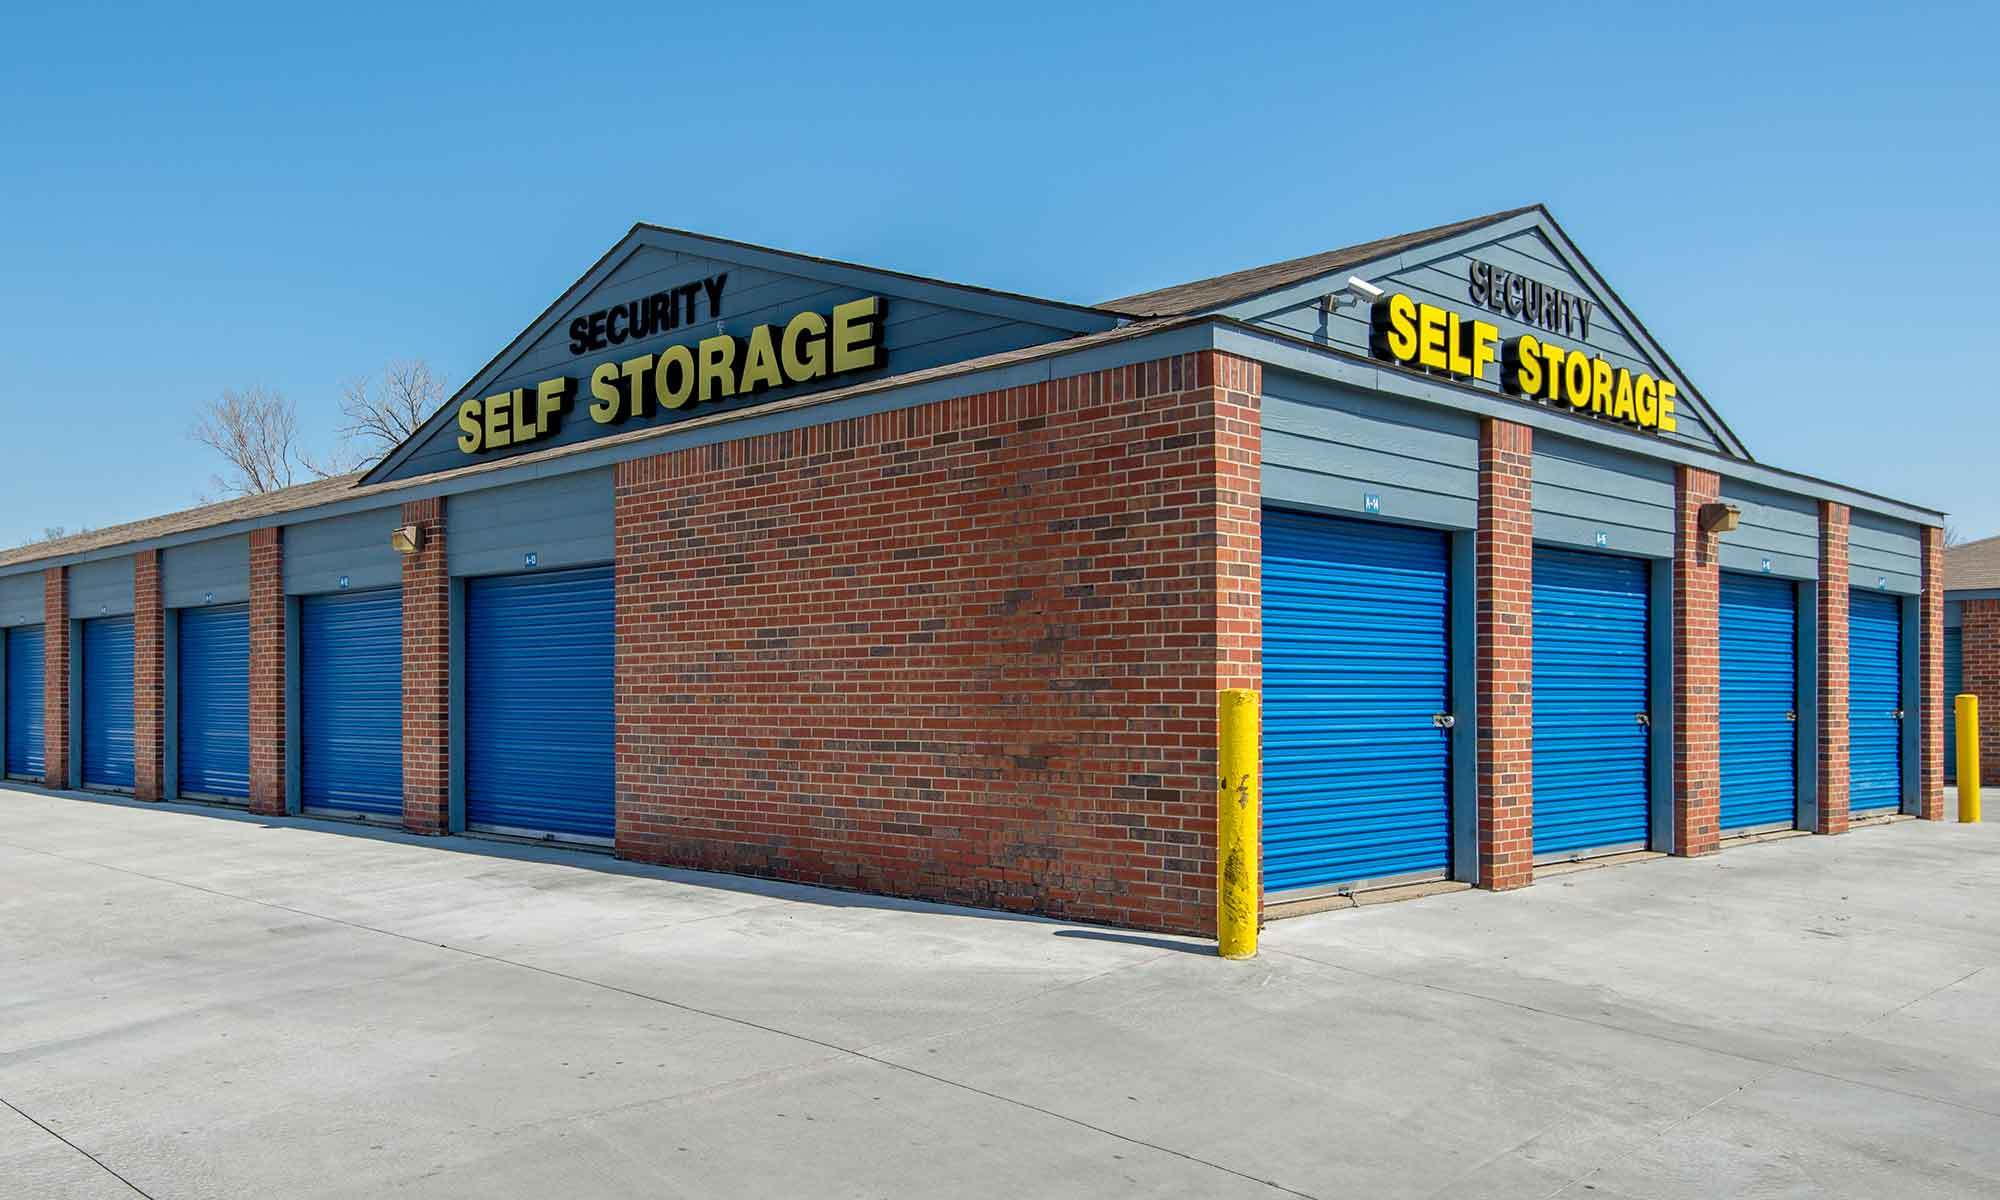 Self storage in Shawnee KS